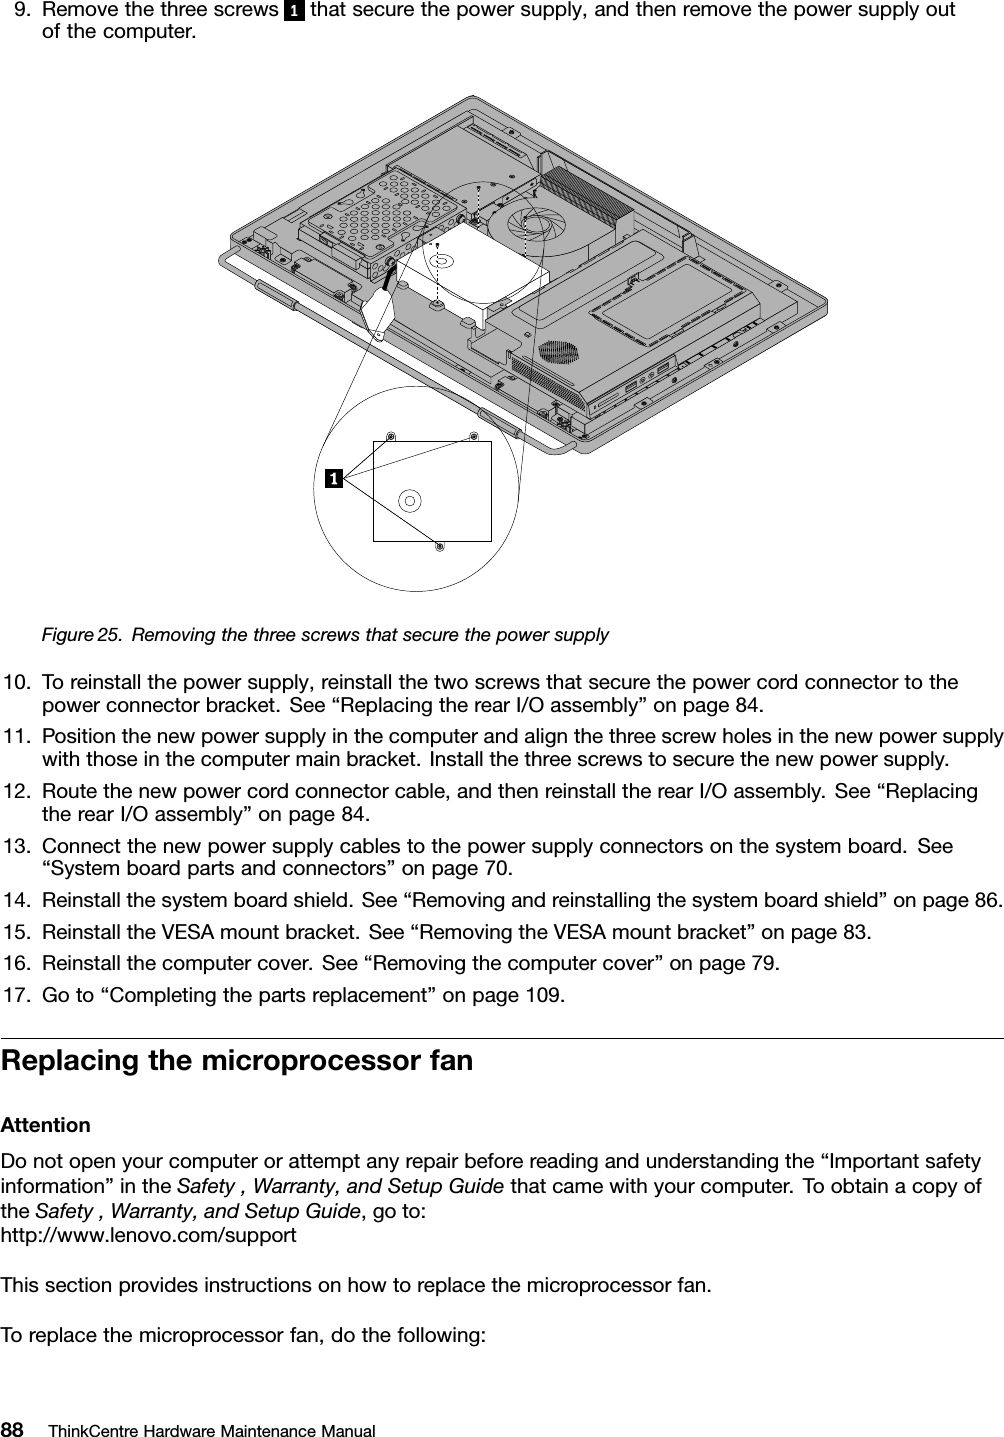 Lenovo M72Z Hmm Us User Manual All in One (Think Centre